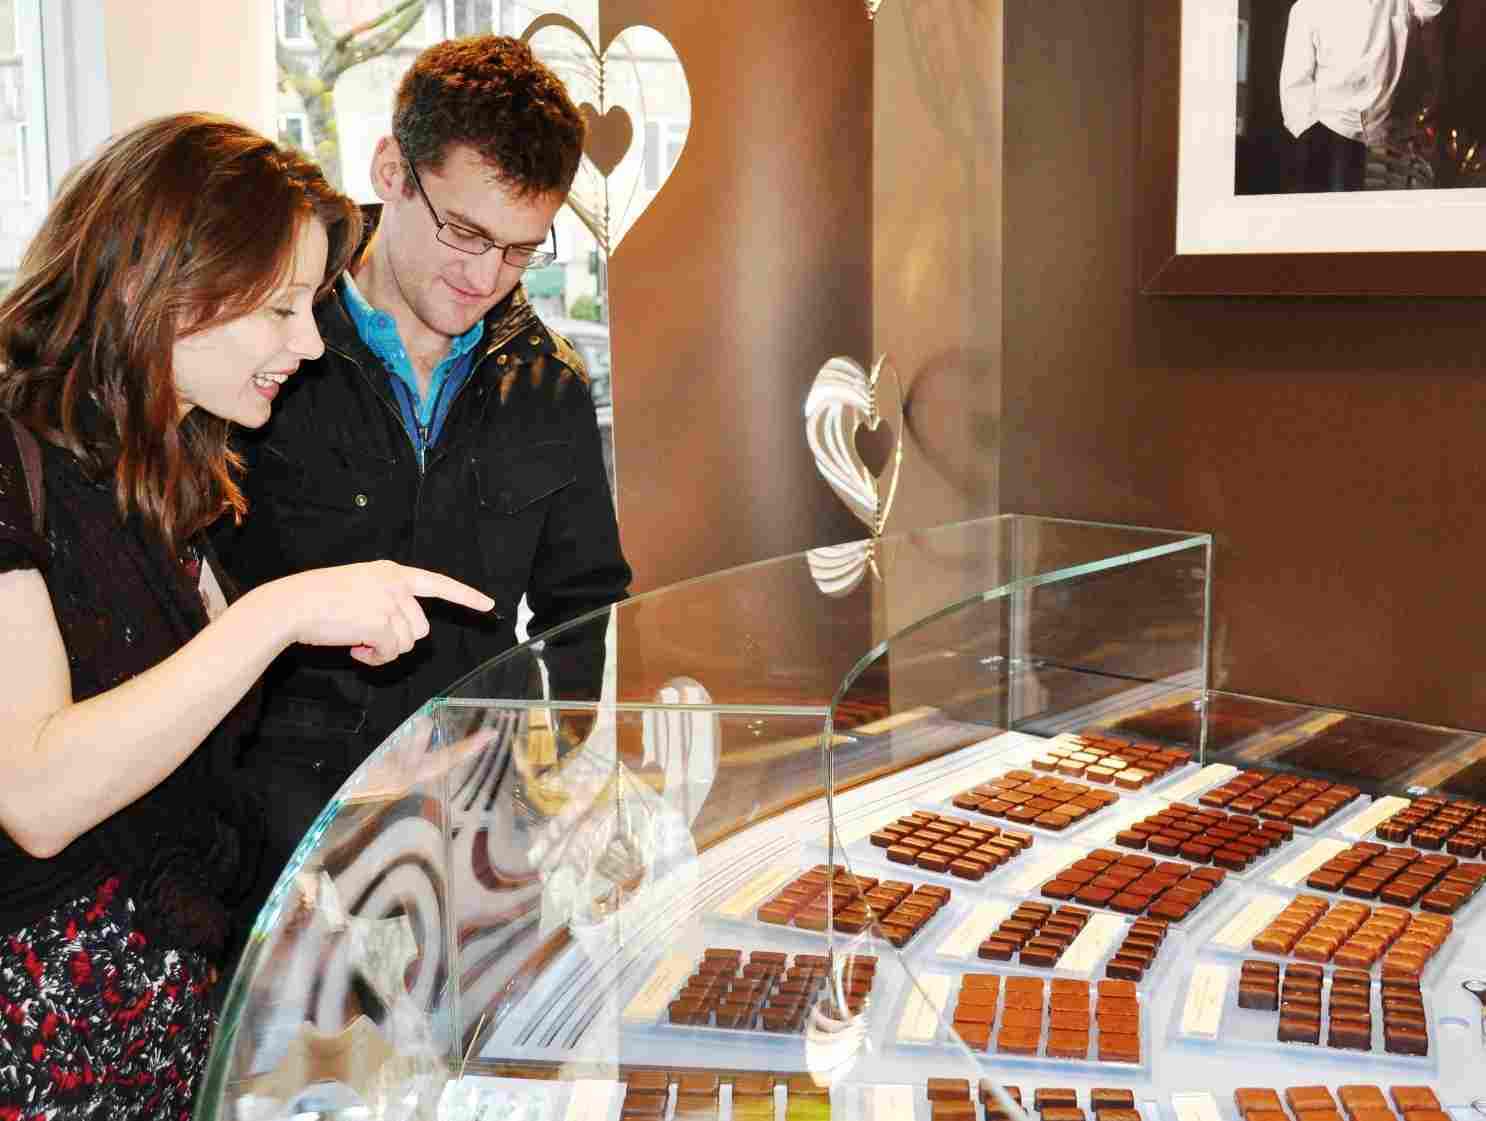 Chocolate Ecstasy Tour Chelsea Tour